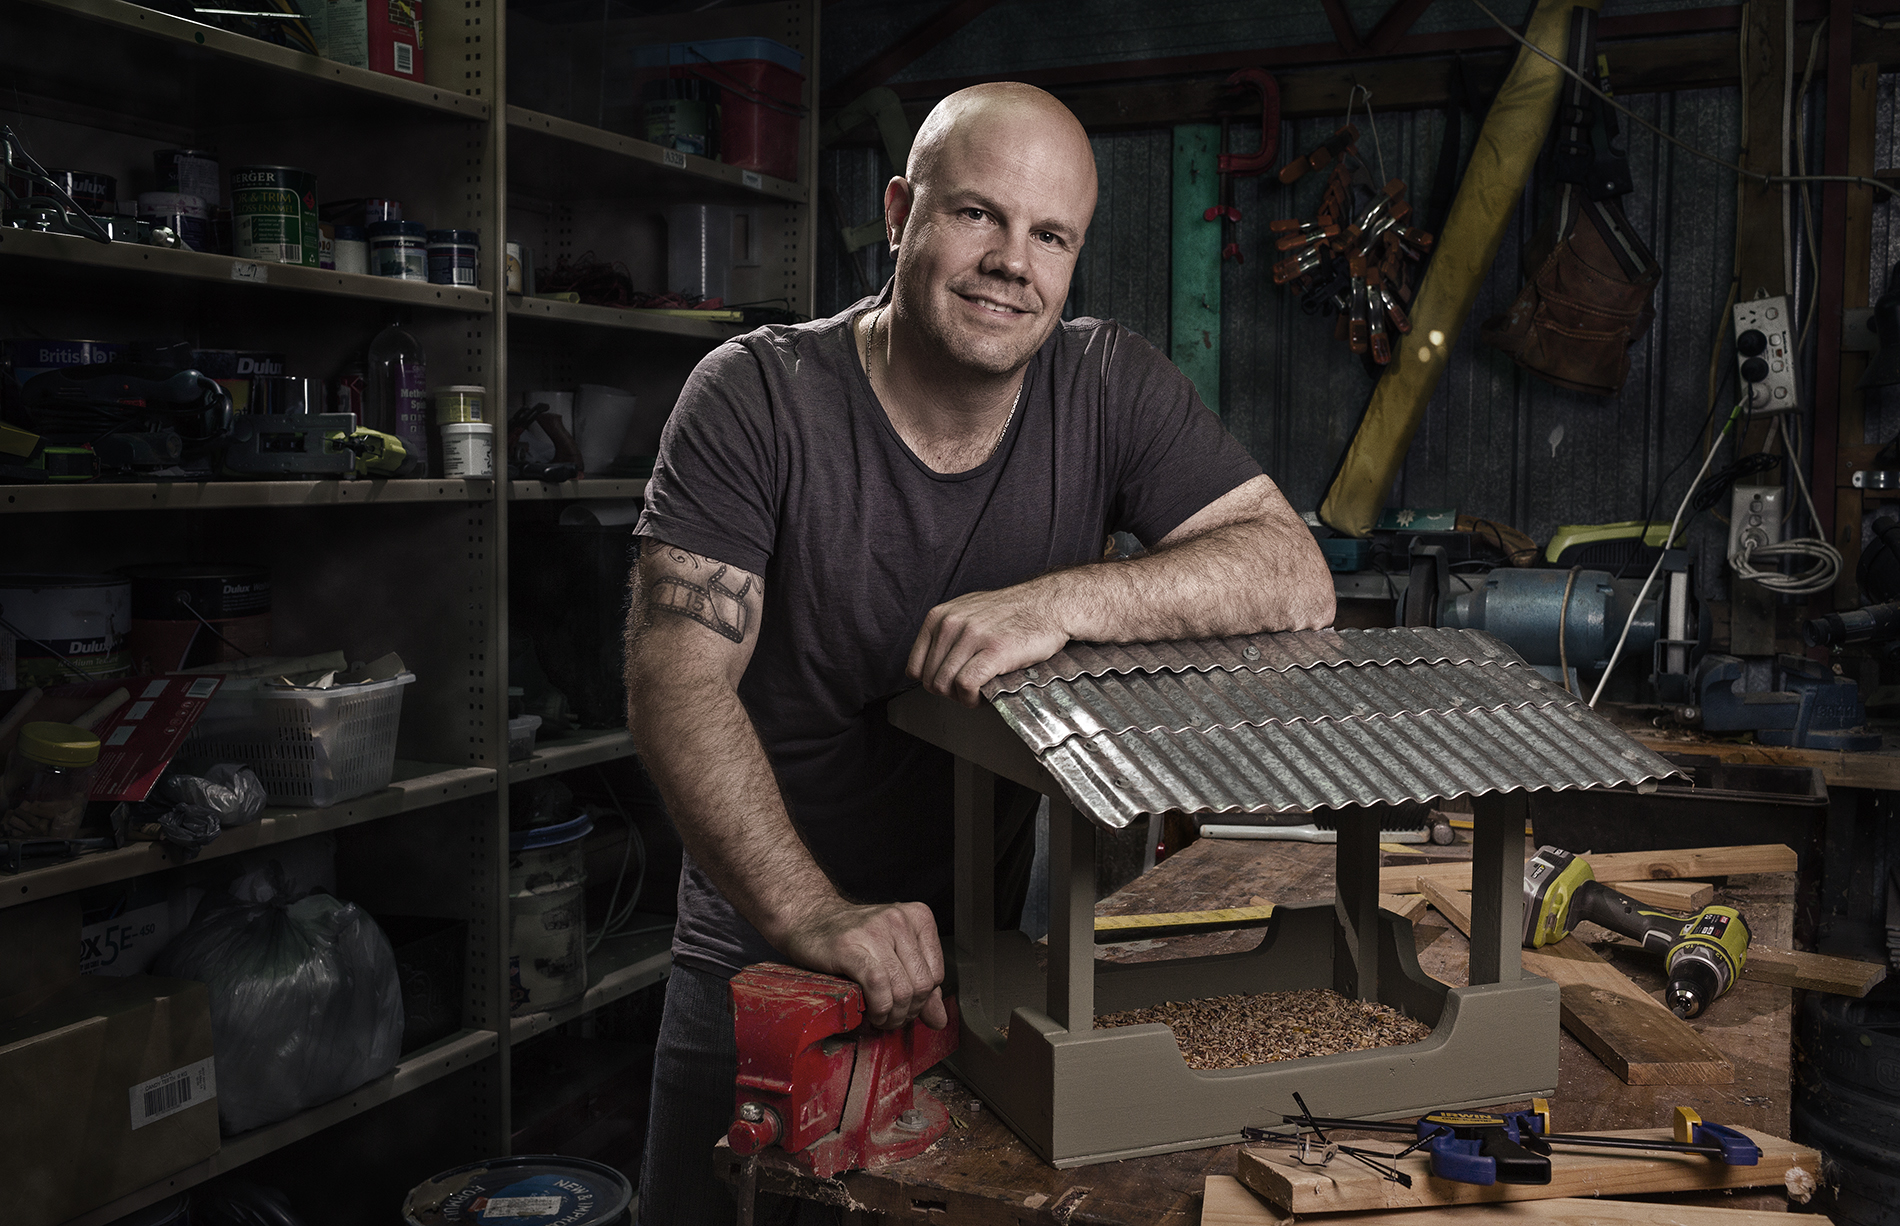 Craig Wetjen, photographer, mens shed tinker, Environmental Portrait